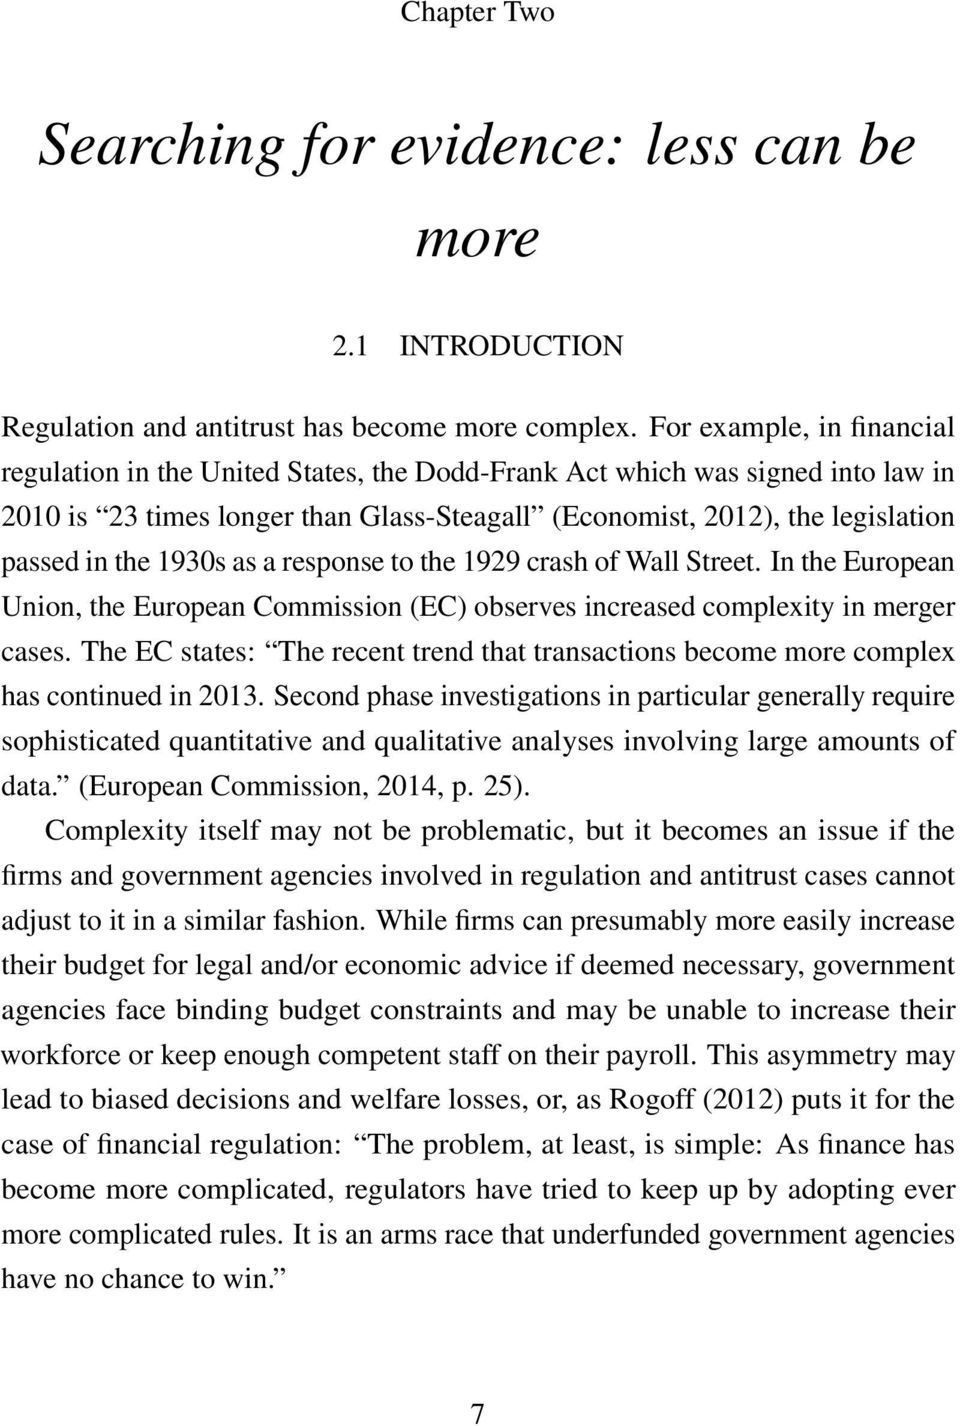 1930s as a response to the 1929 crash of Wall Street. In the European Union, the European Commission (EC) observes increased complexity in merger cases.